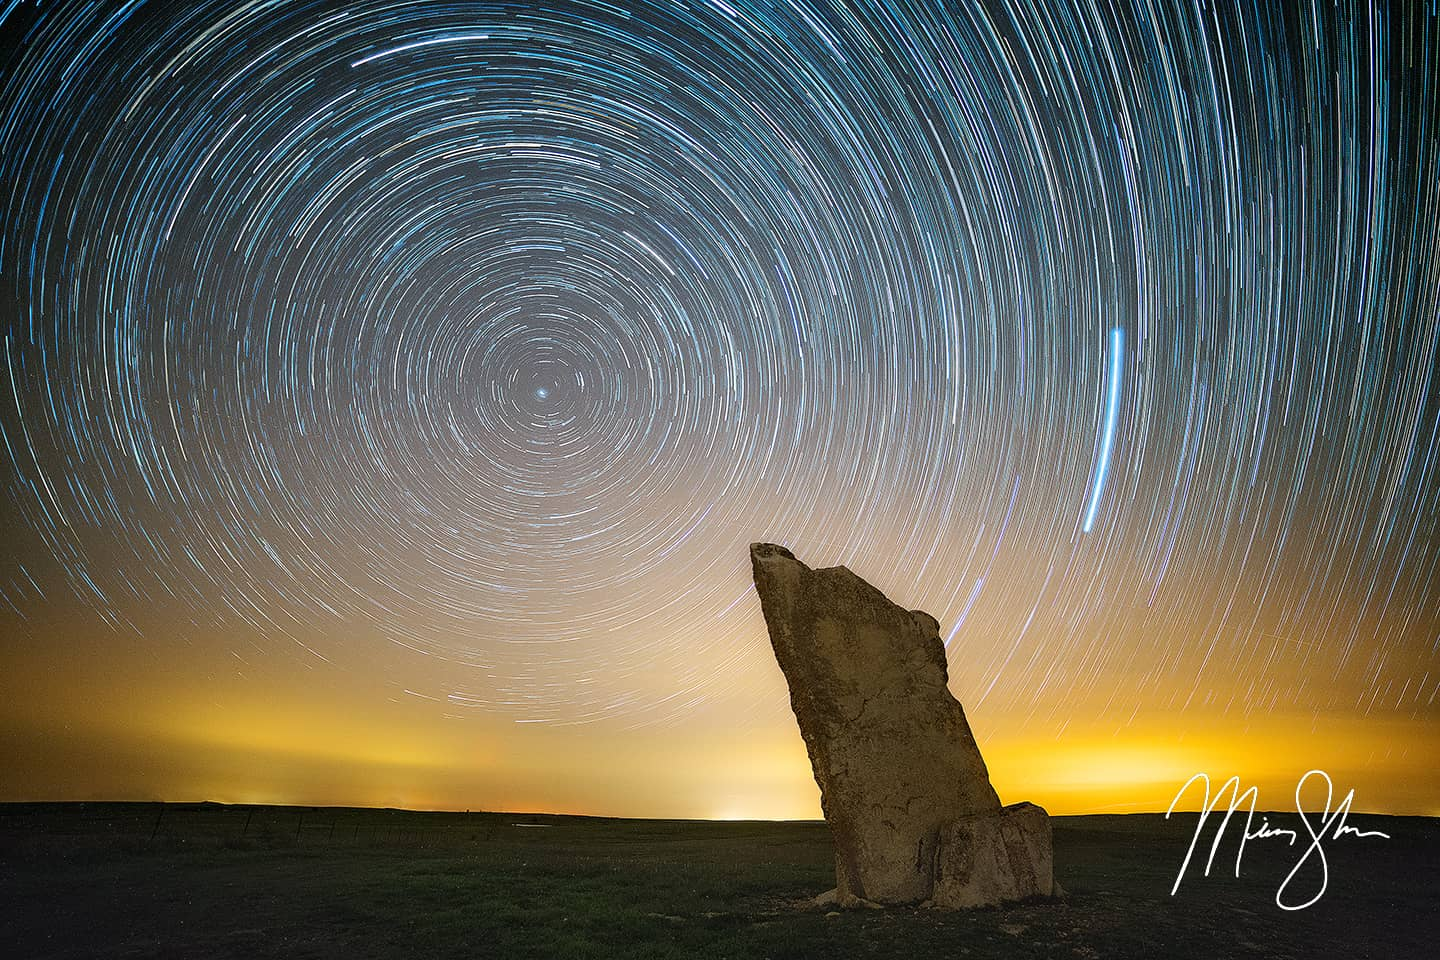 Teter Rock Star Trails - Teter Rock, Flint Hills, Kansas